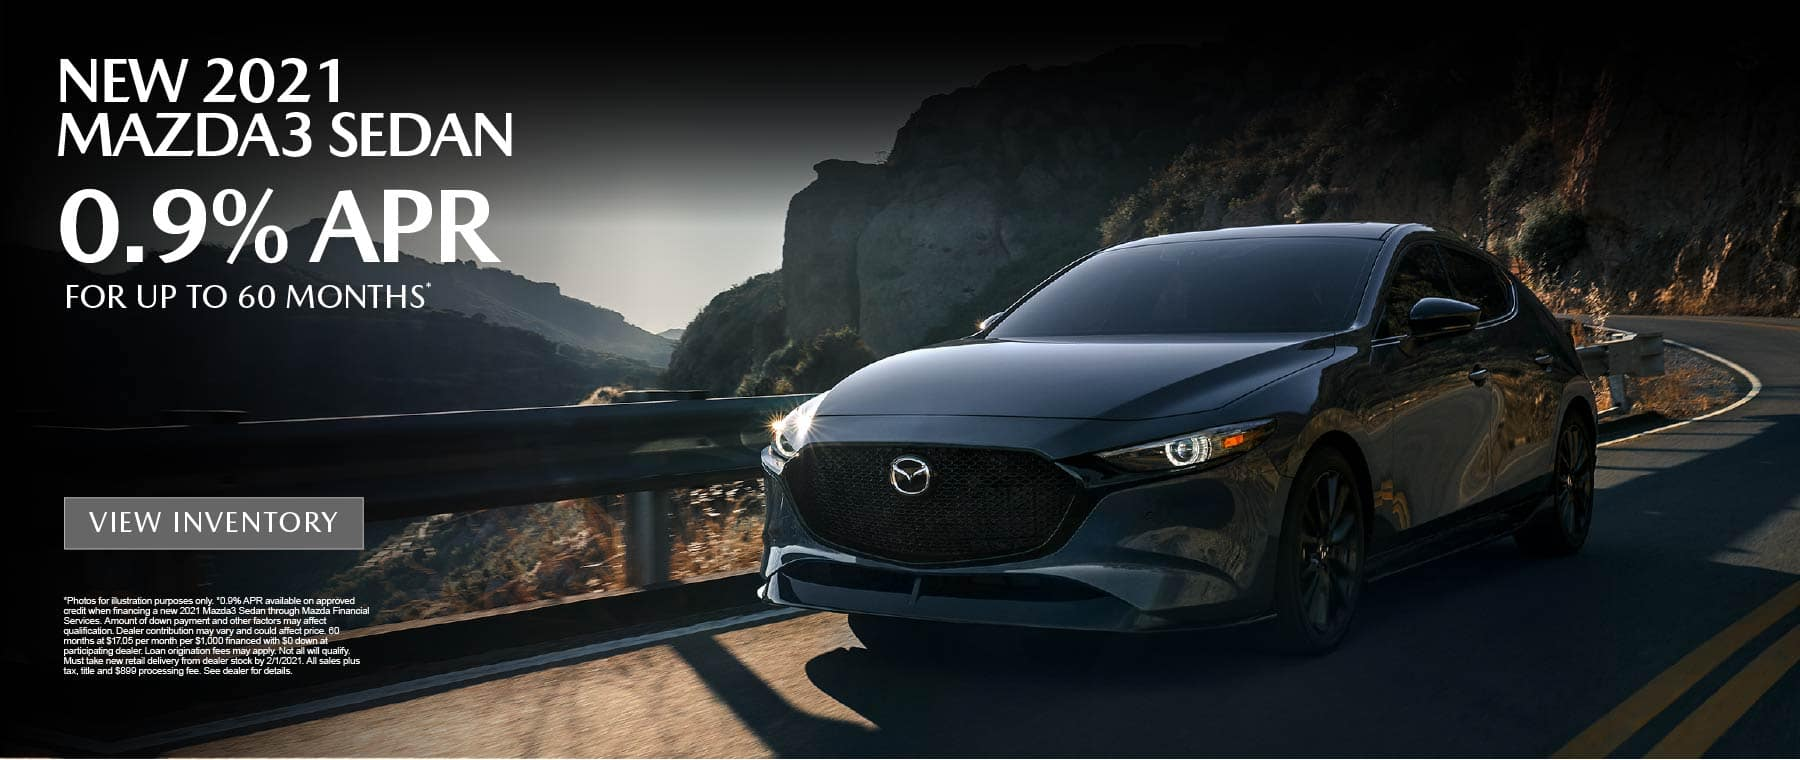 NEW 2021 MAZDA3 SEDAN 0.9% APR for up to 60 months.